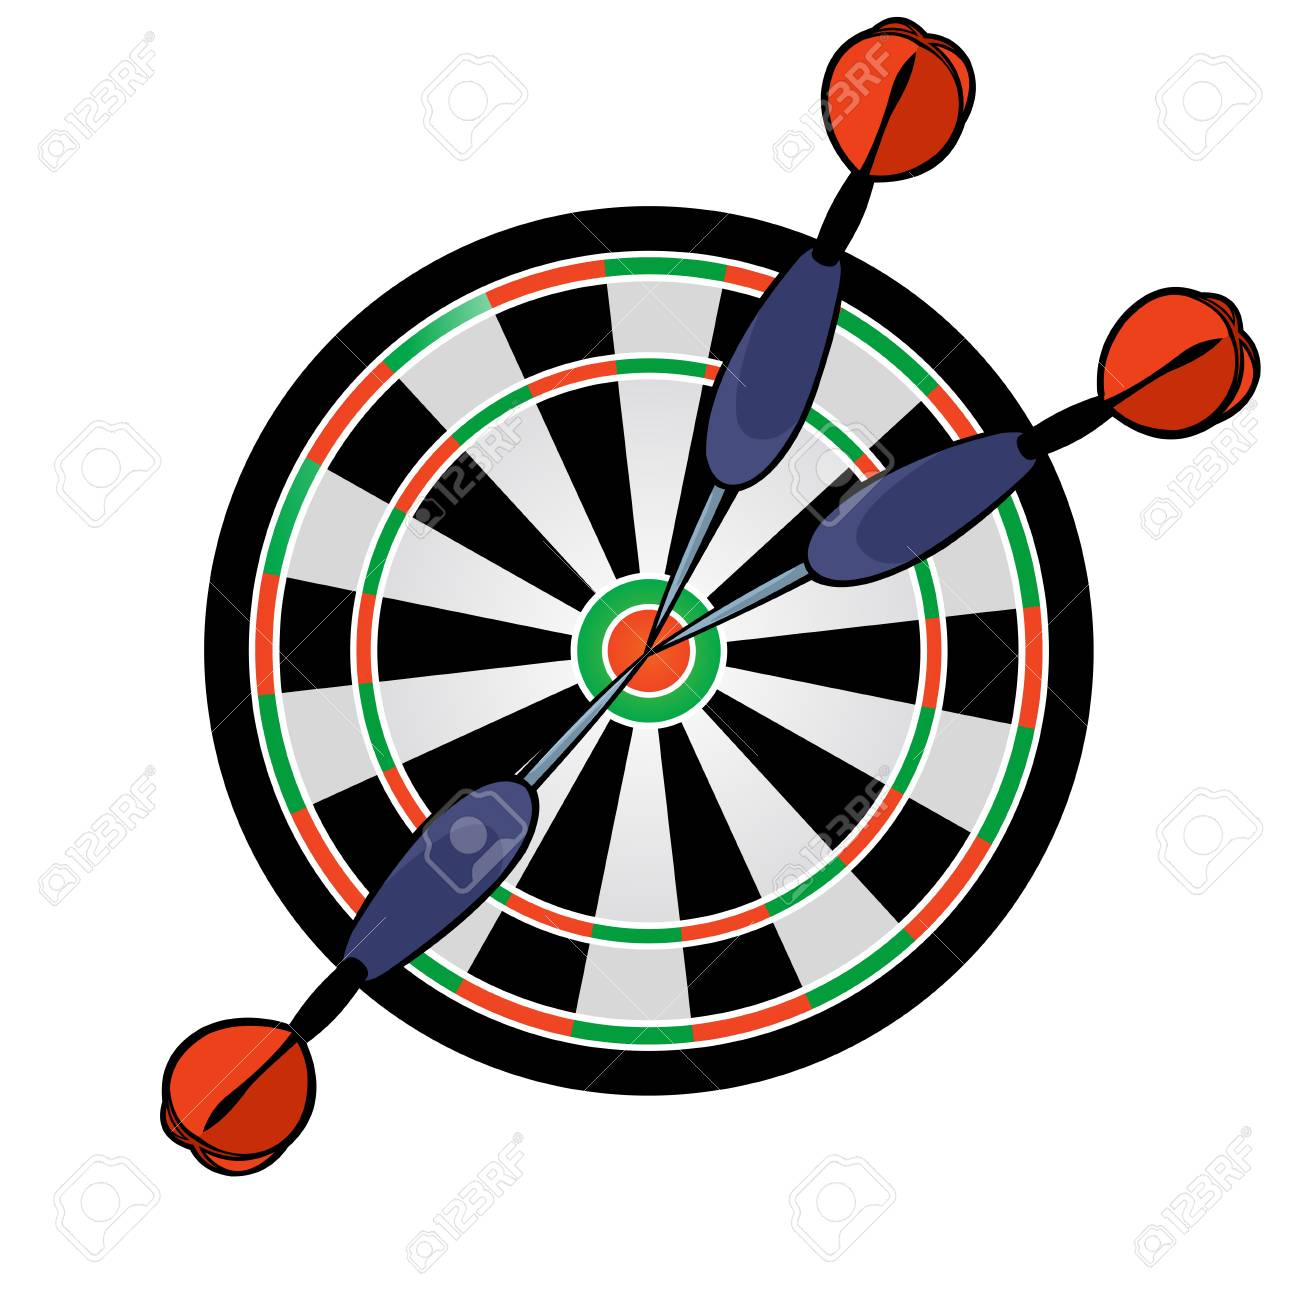 97617622-cartoon-dartboard-with-darts-hitting-in-the-target-on-white-background